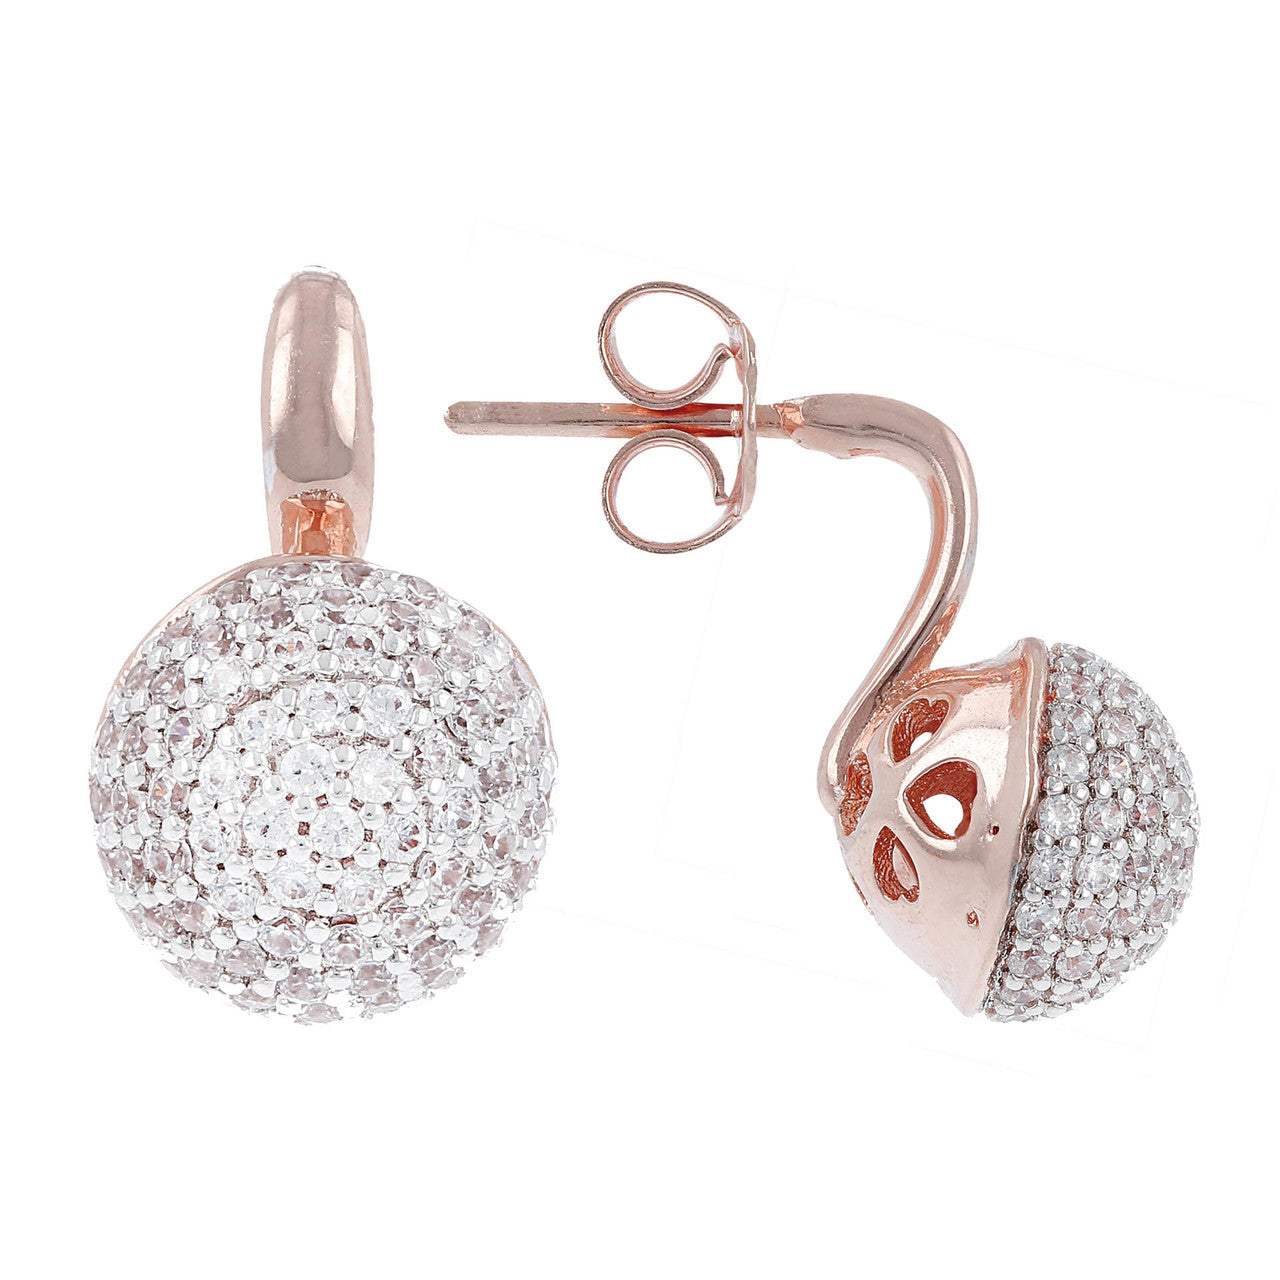 Pave Stud Earrings front and side